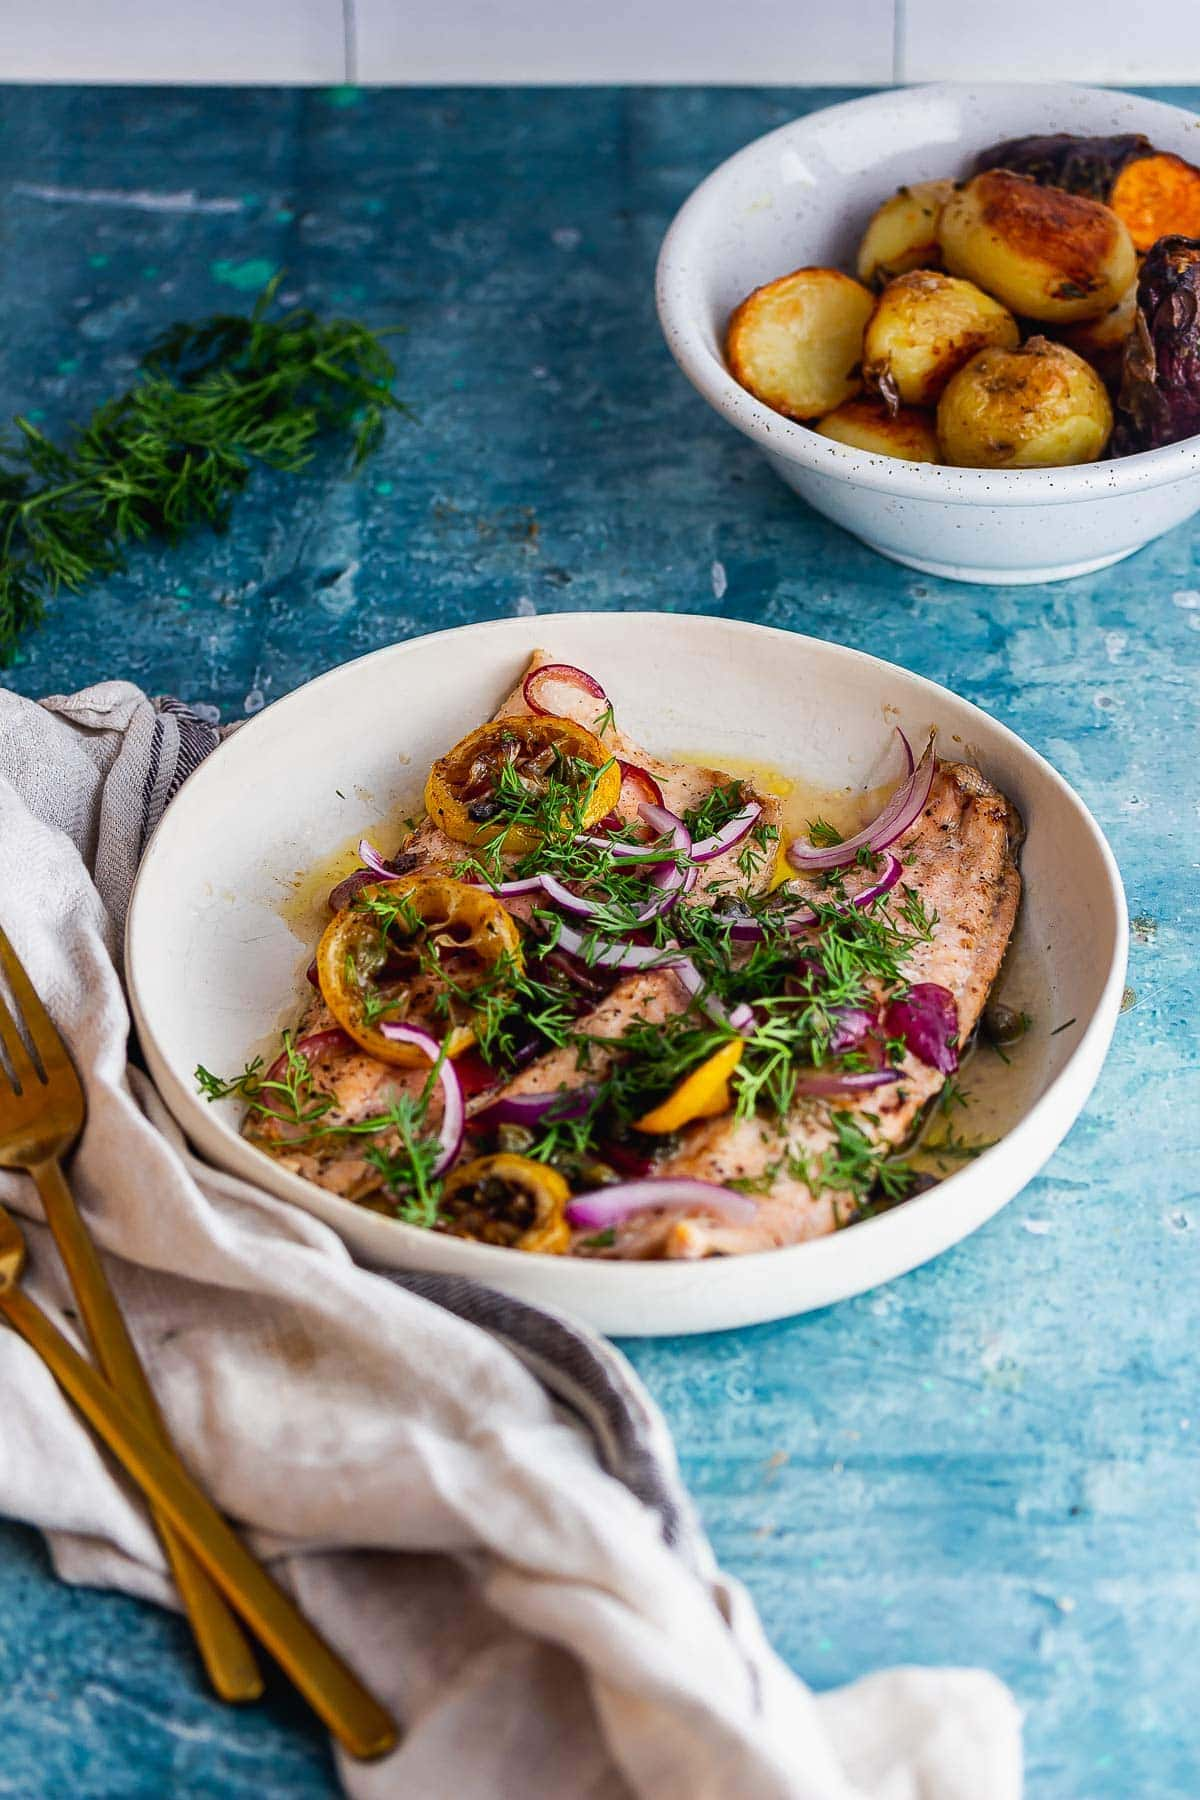 Roasted trout with a cream cloth and gold forks